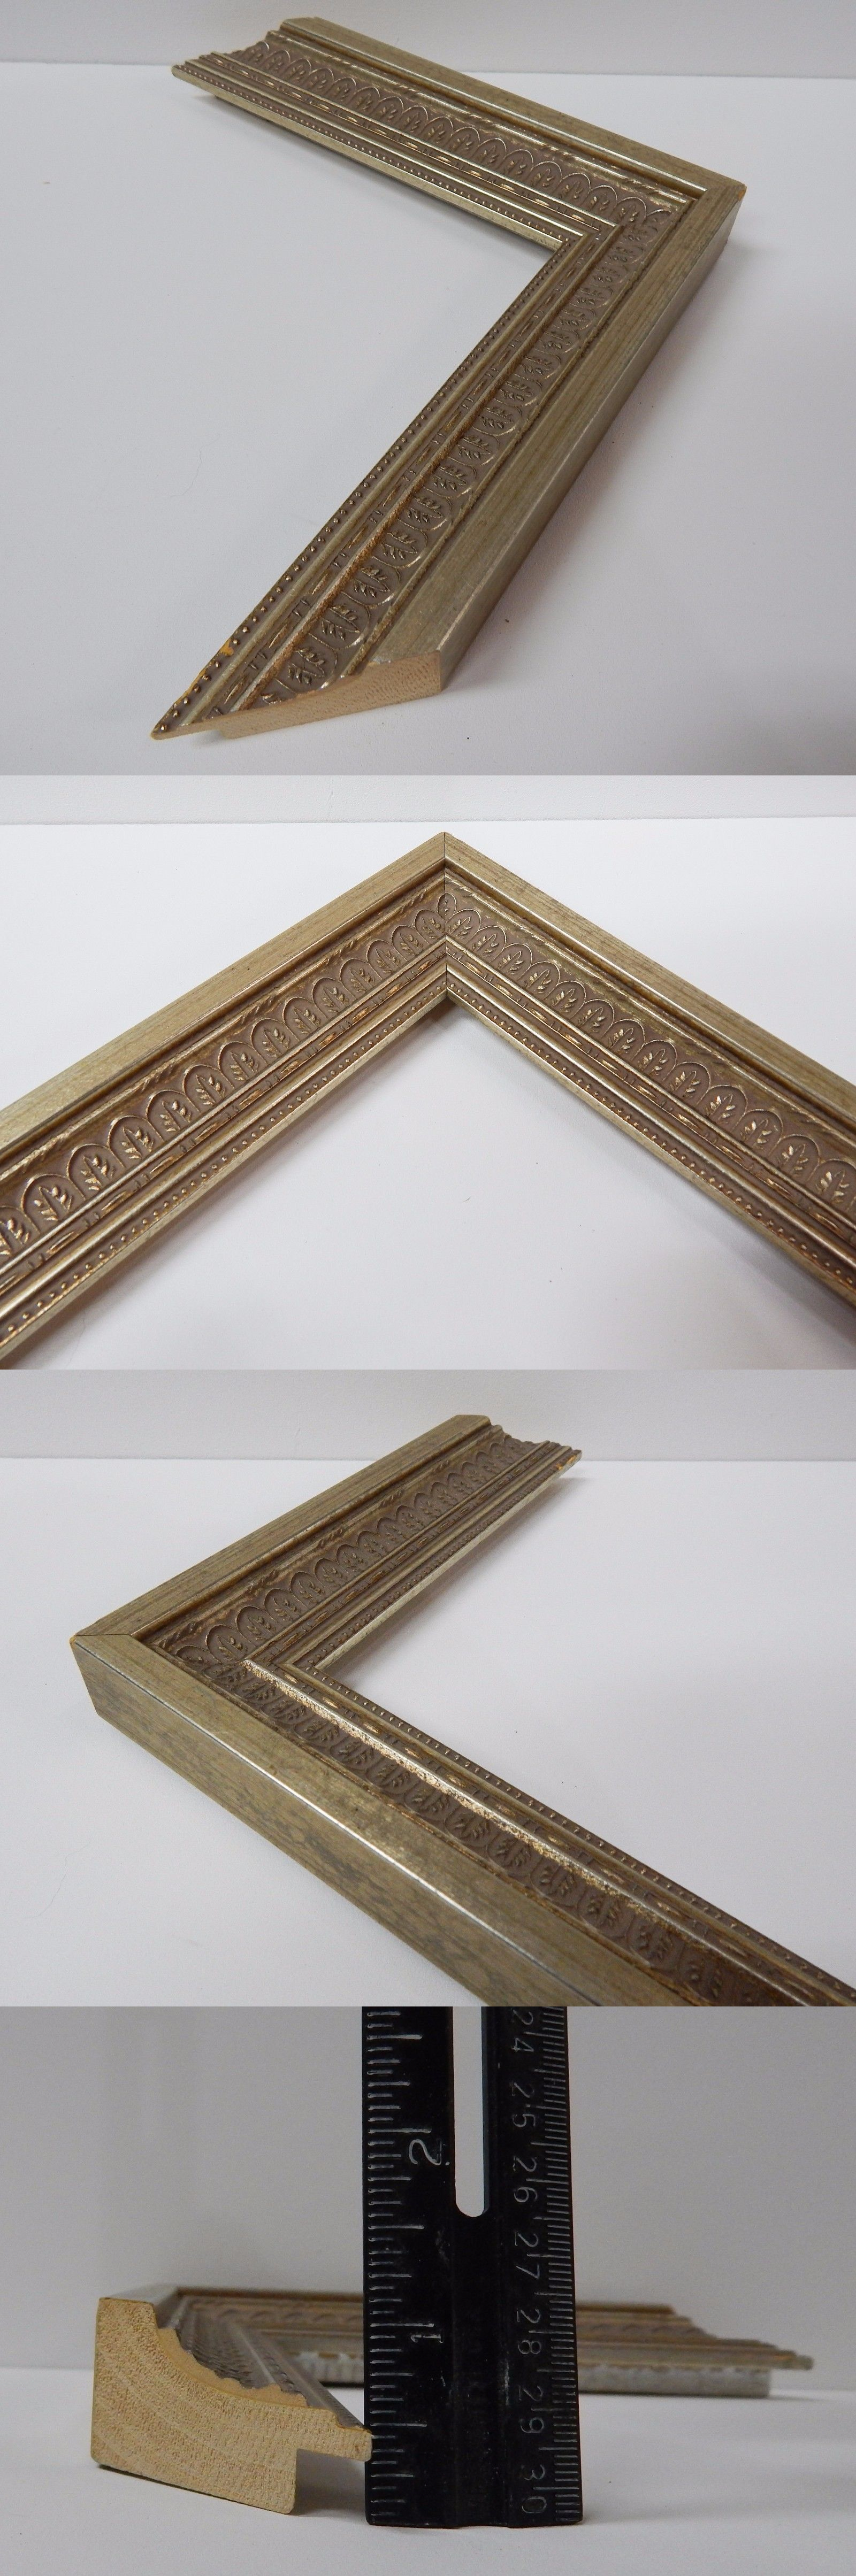 Frames and Supplies 37575: 32 @$1Ft Custom Length Picture Frame ...